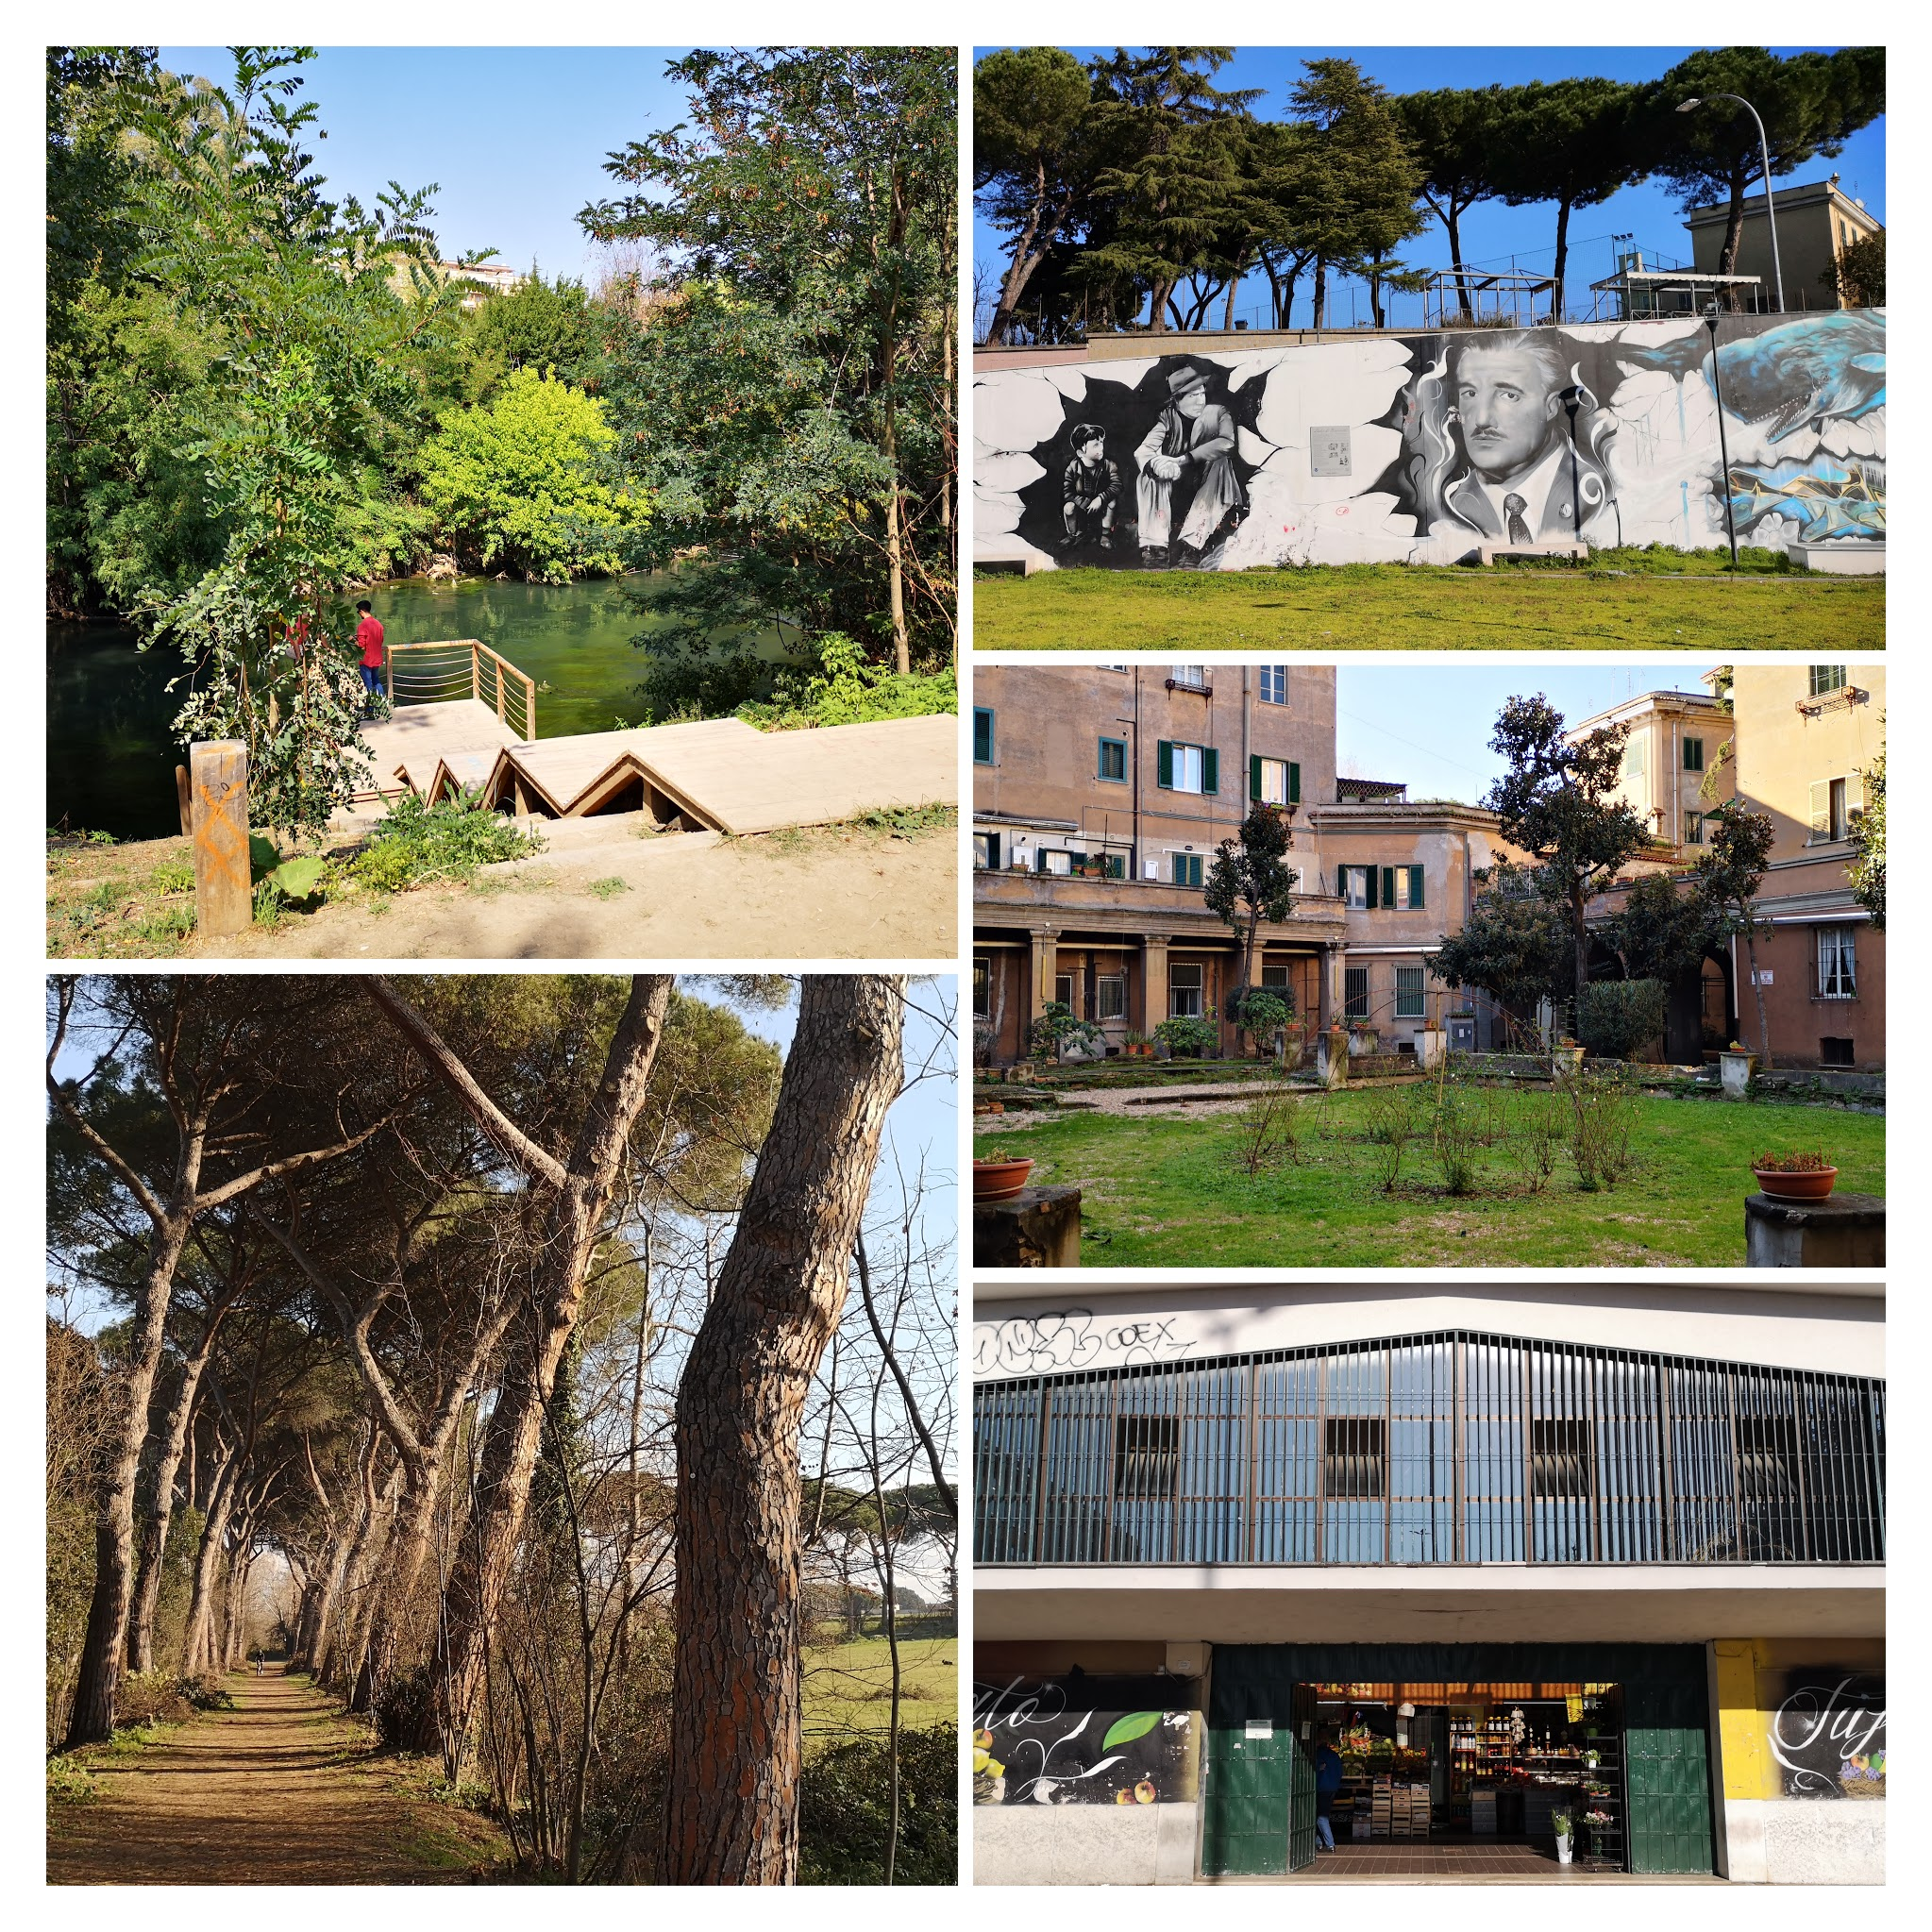 IMG_20200918_123441-COLLAGE